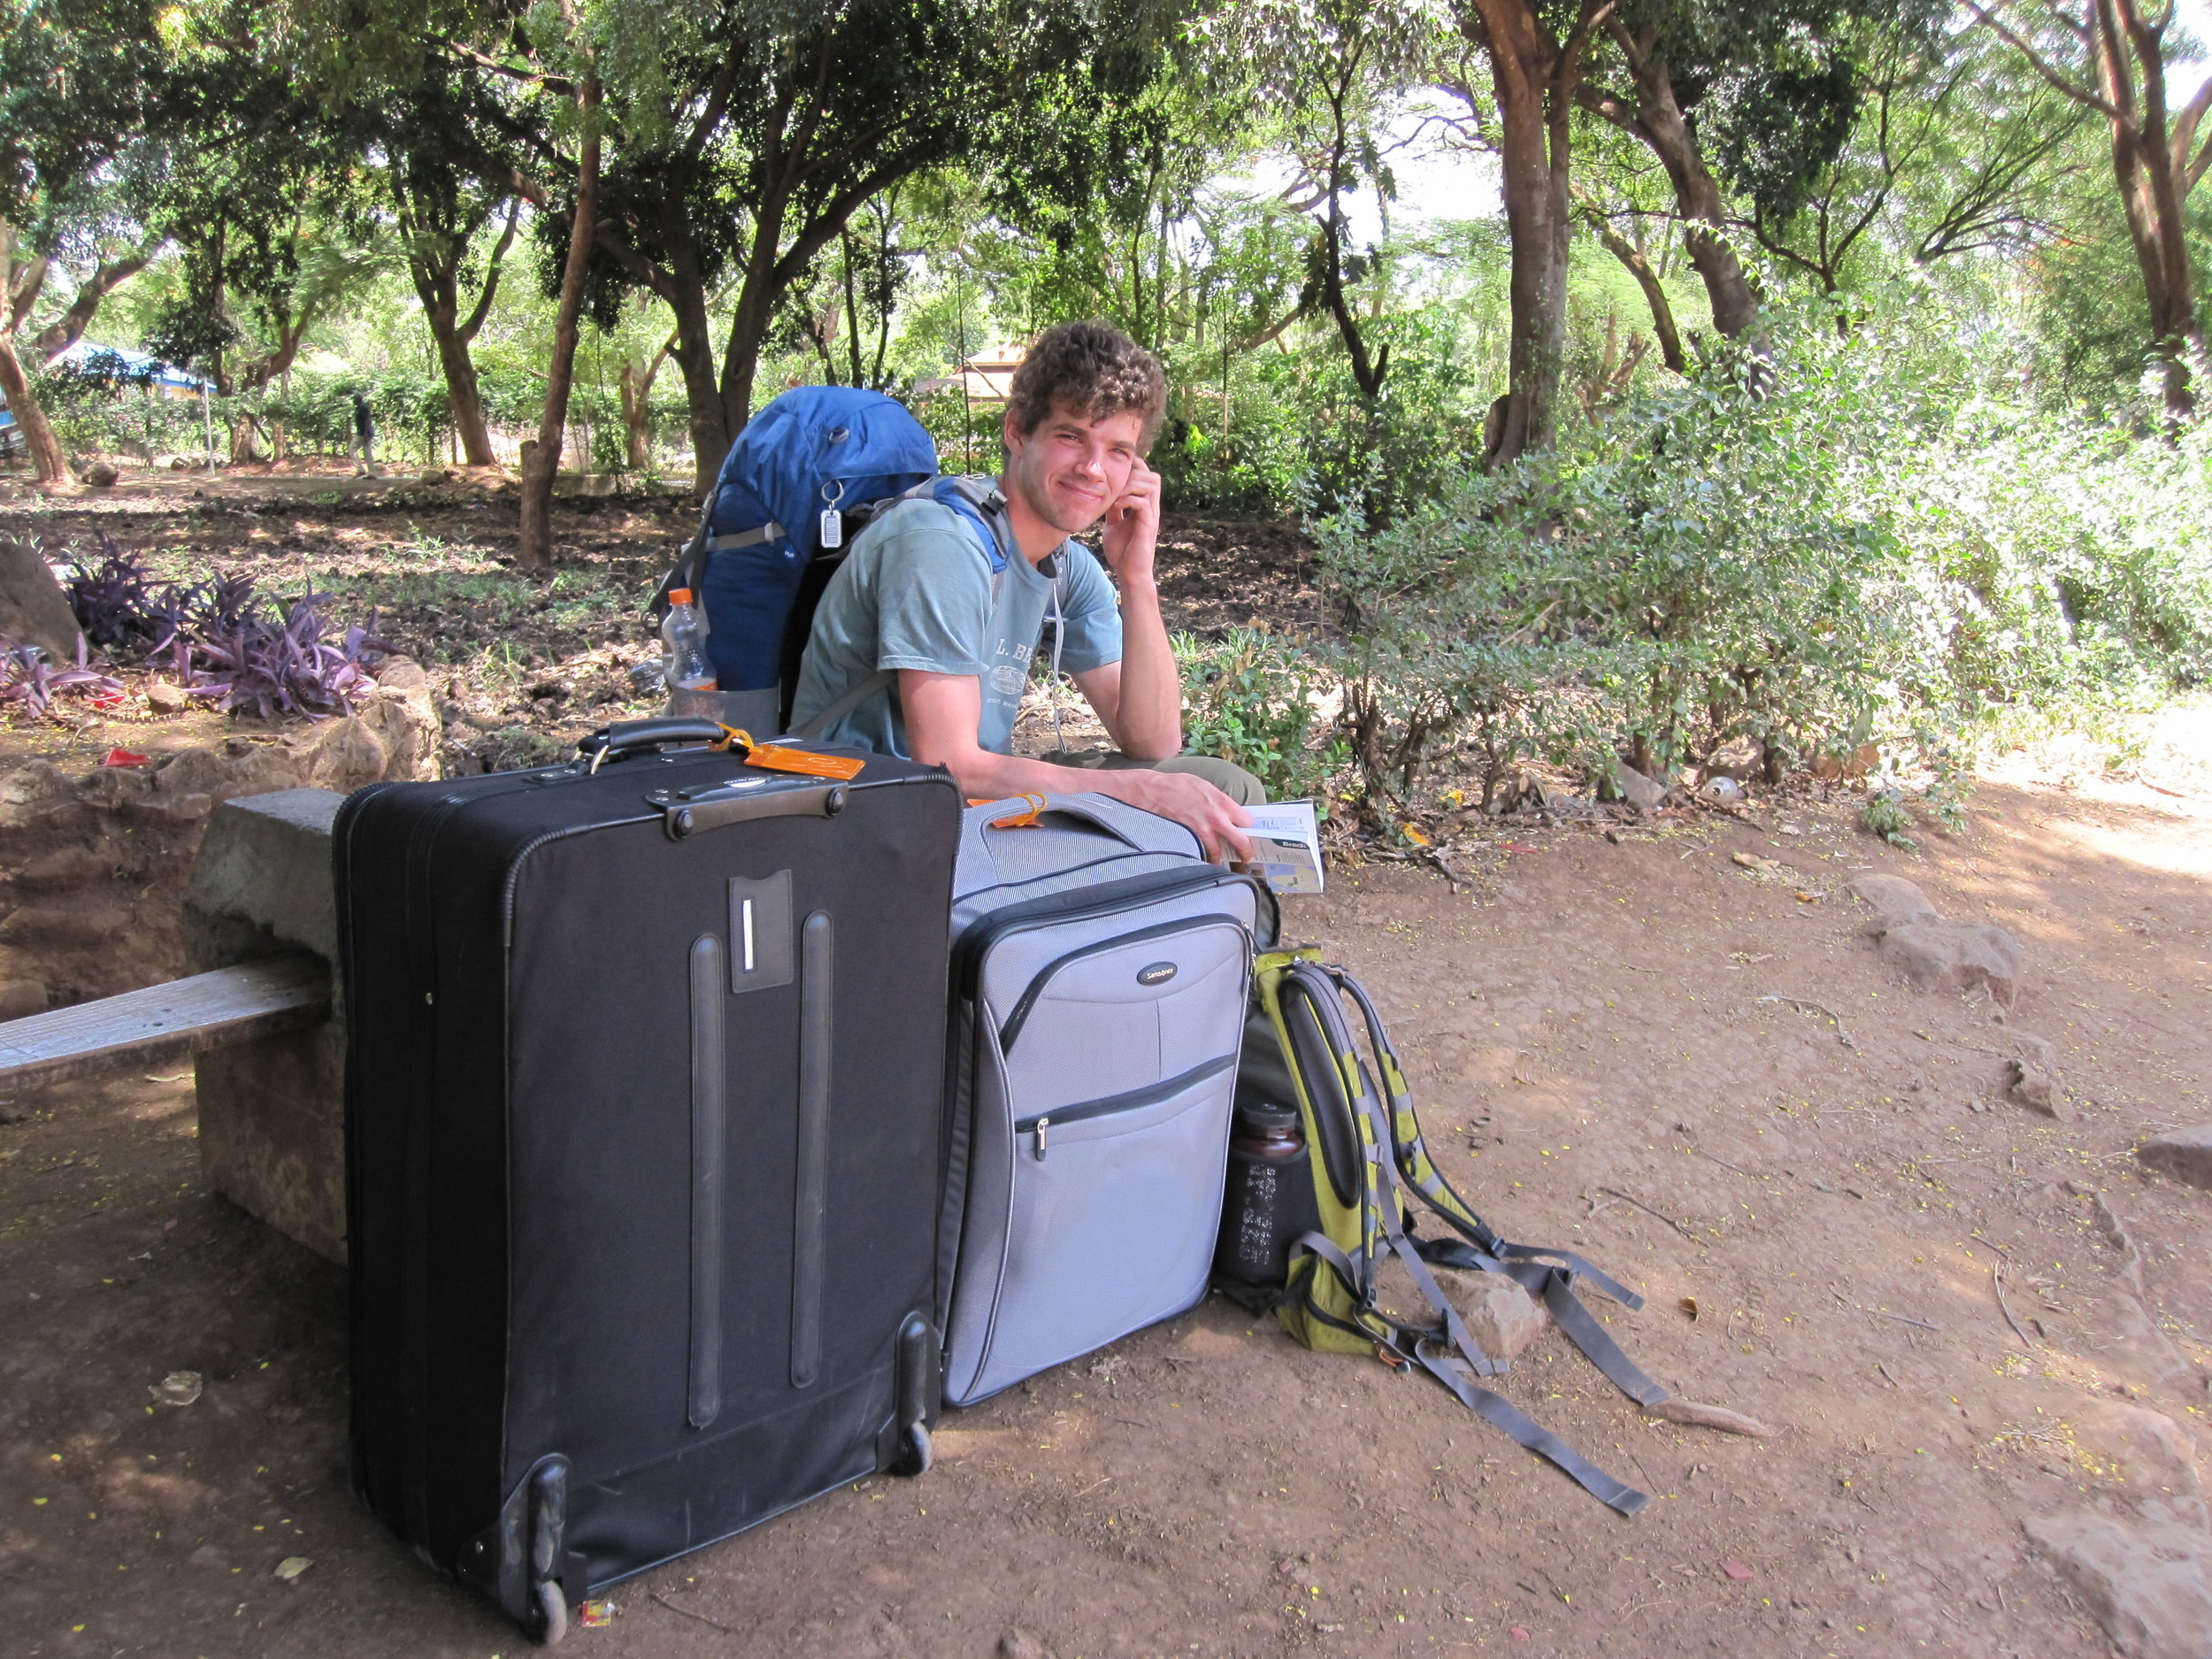 We took a bus from Arusha to Moshi, but the bus driver drove past our stop. This resulted in us towing our suitcases on the side of the road.